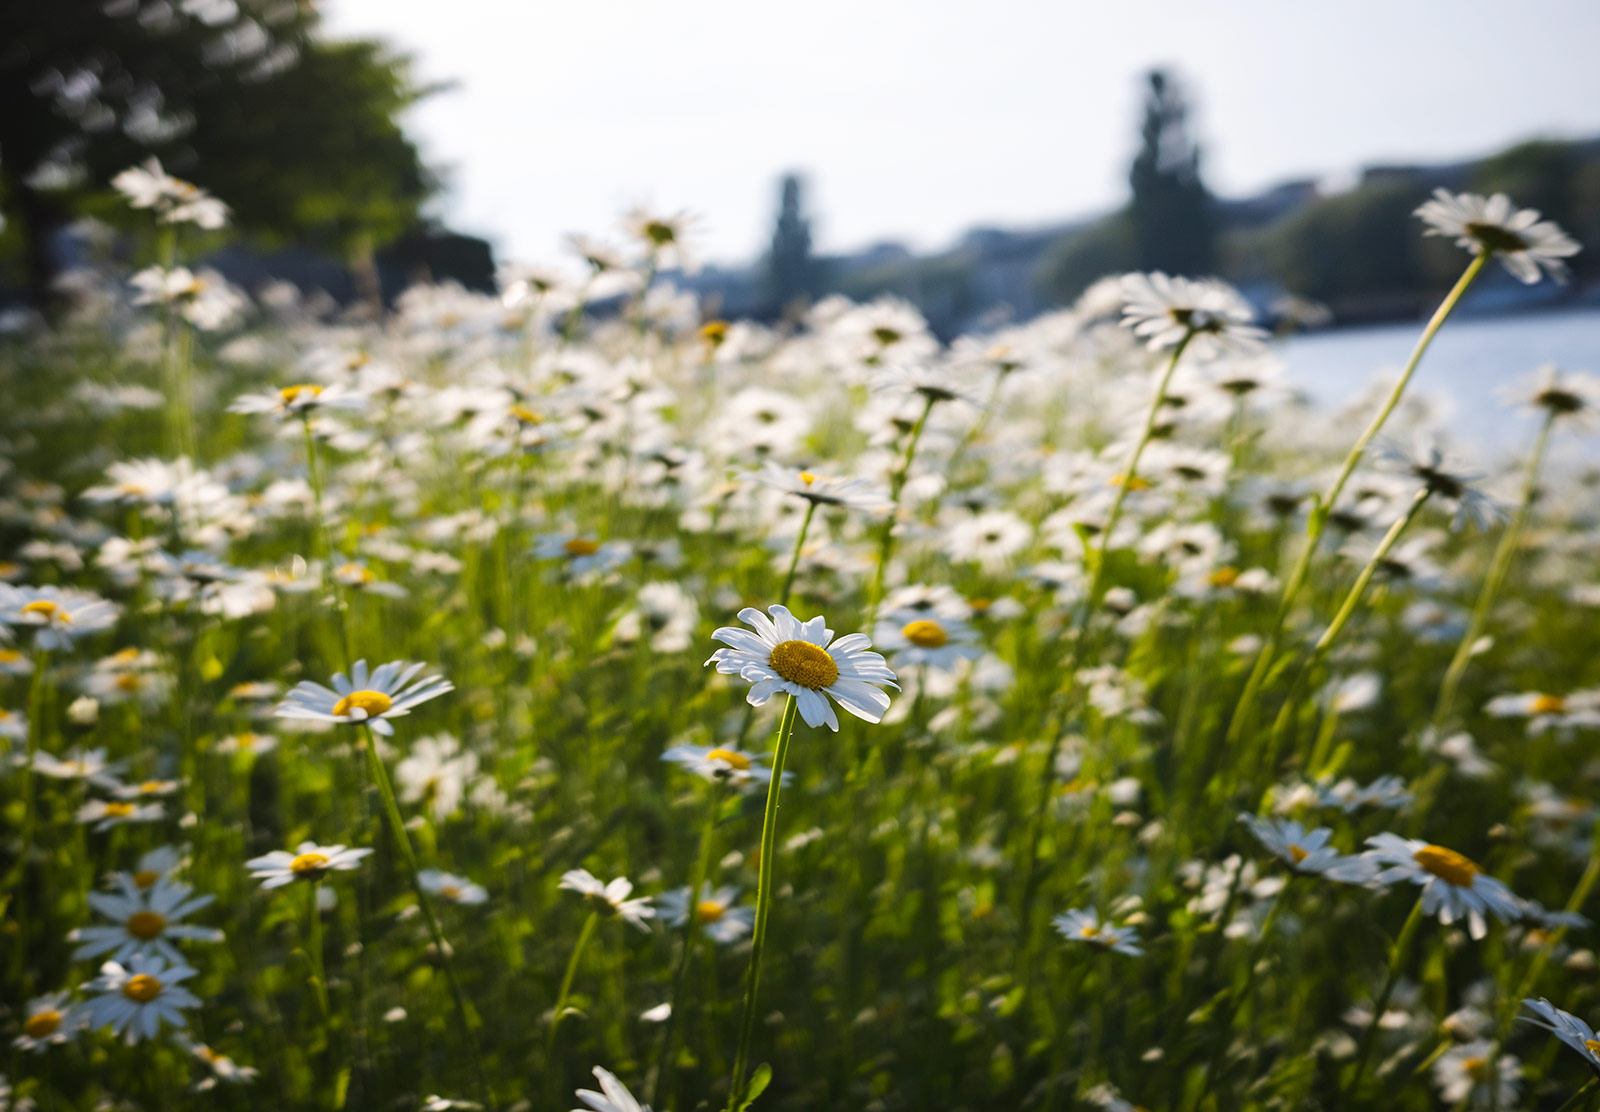 Group of oxeye daisies